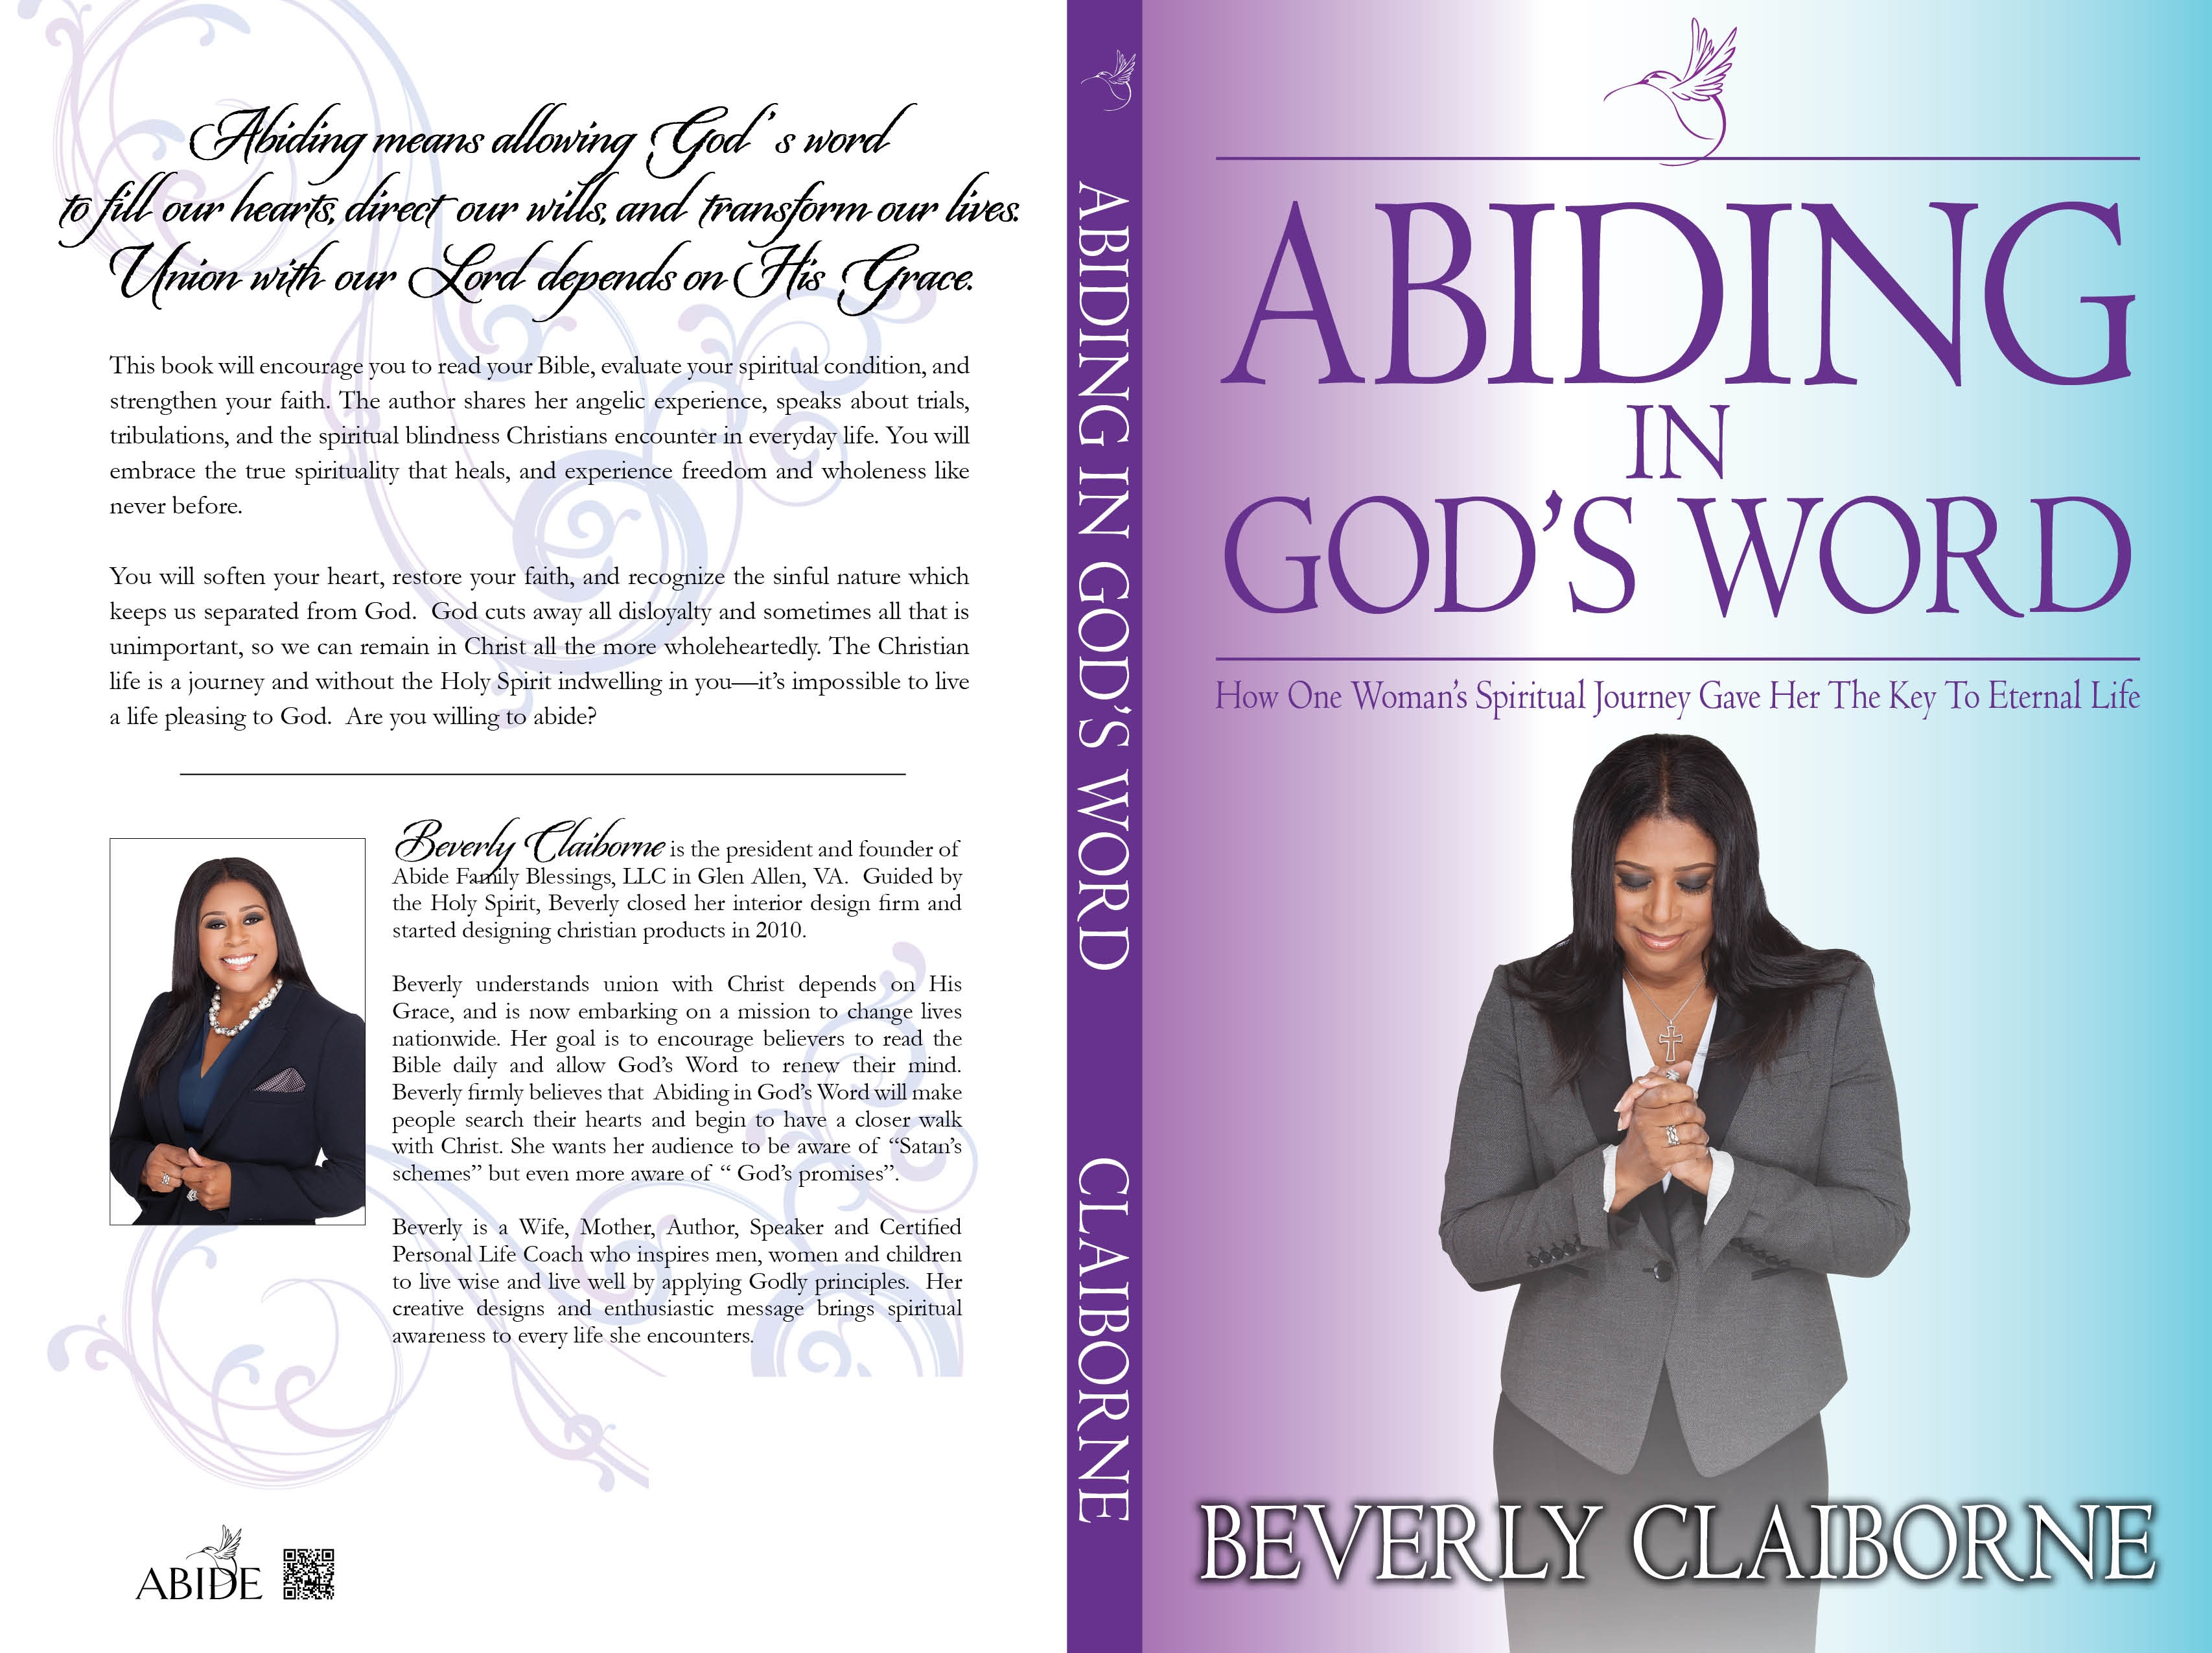 Hot off the Press – Abiding in God's Word